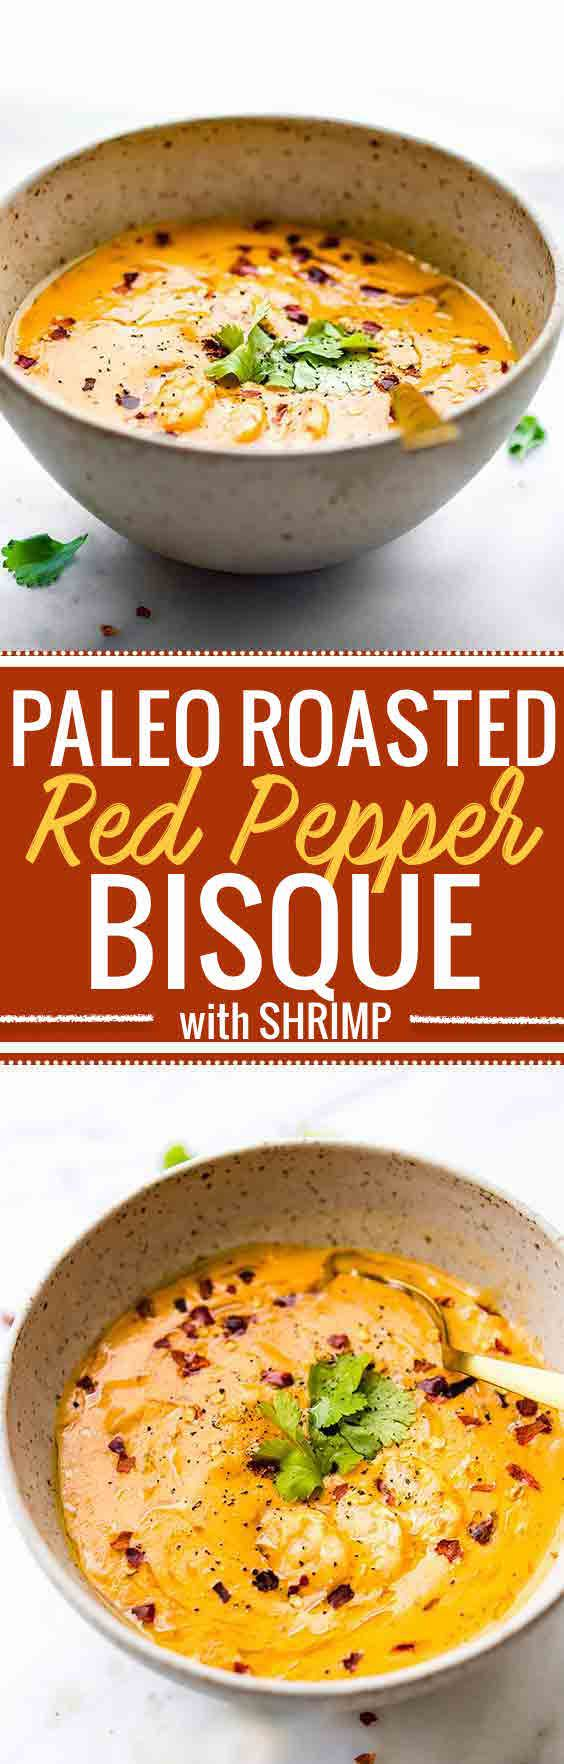 This creamyroasted red pepper bisquewith Shrimp is dairy free, paleo, and totally delicious! A spicybisque with healing immunity boosting nutrients. Perfect for cold weather or under the weather! Also a great way to get veggies into your meal. Nourish your family, feed your friends, or enjoy thisrobust roasted red pepper bisque recipe all to yourself. Whole 30 compliant.www.cottercrunch.com @cottercrunch